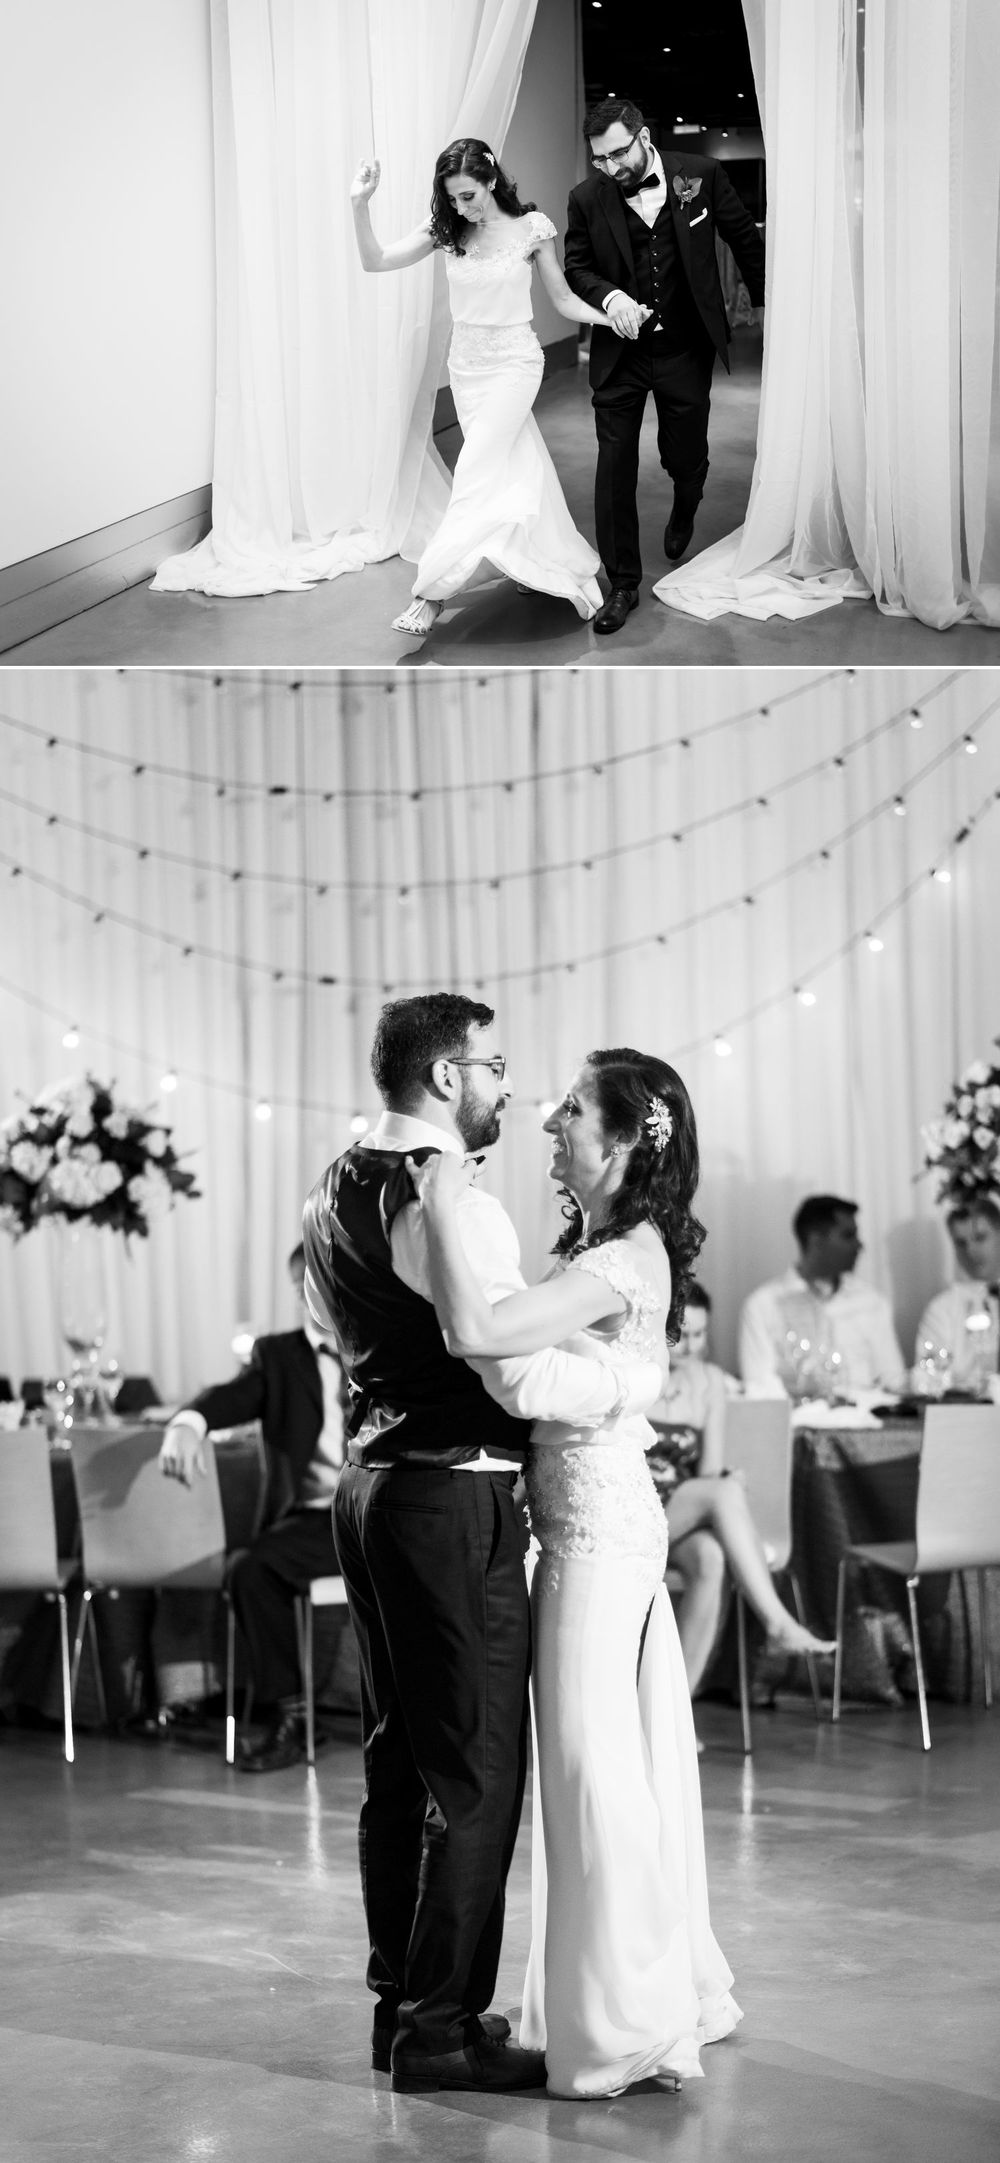 The couples entrance and first dance at their wedding reception at the Museum of Nature